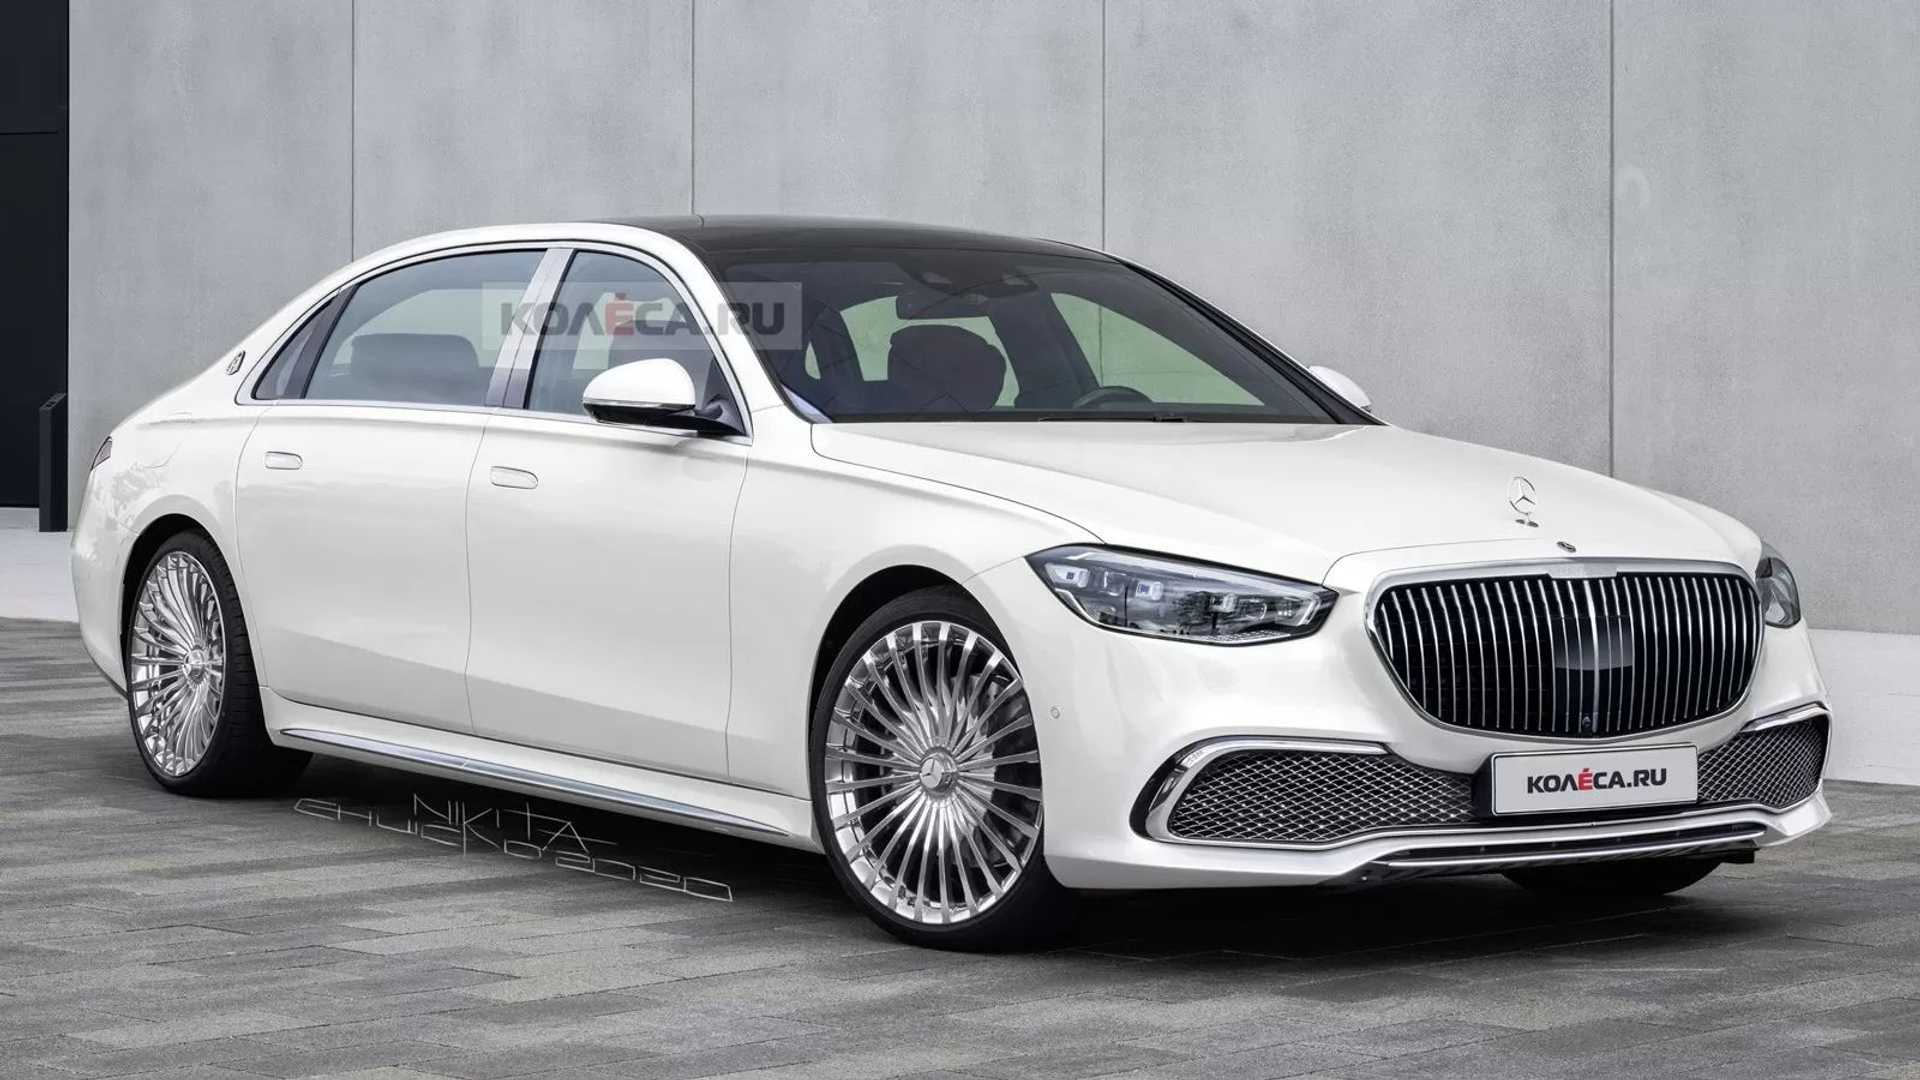 Mercedes-Maybach S-Class Rendering Imagines New Look For Luxury Sedan